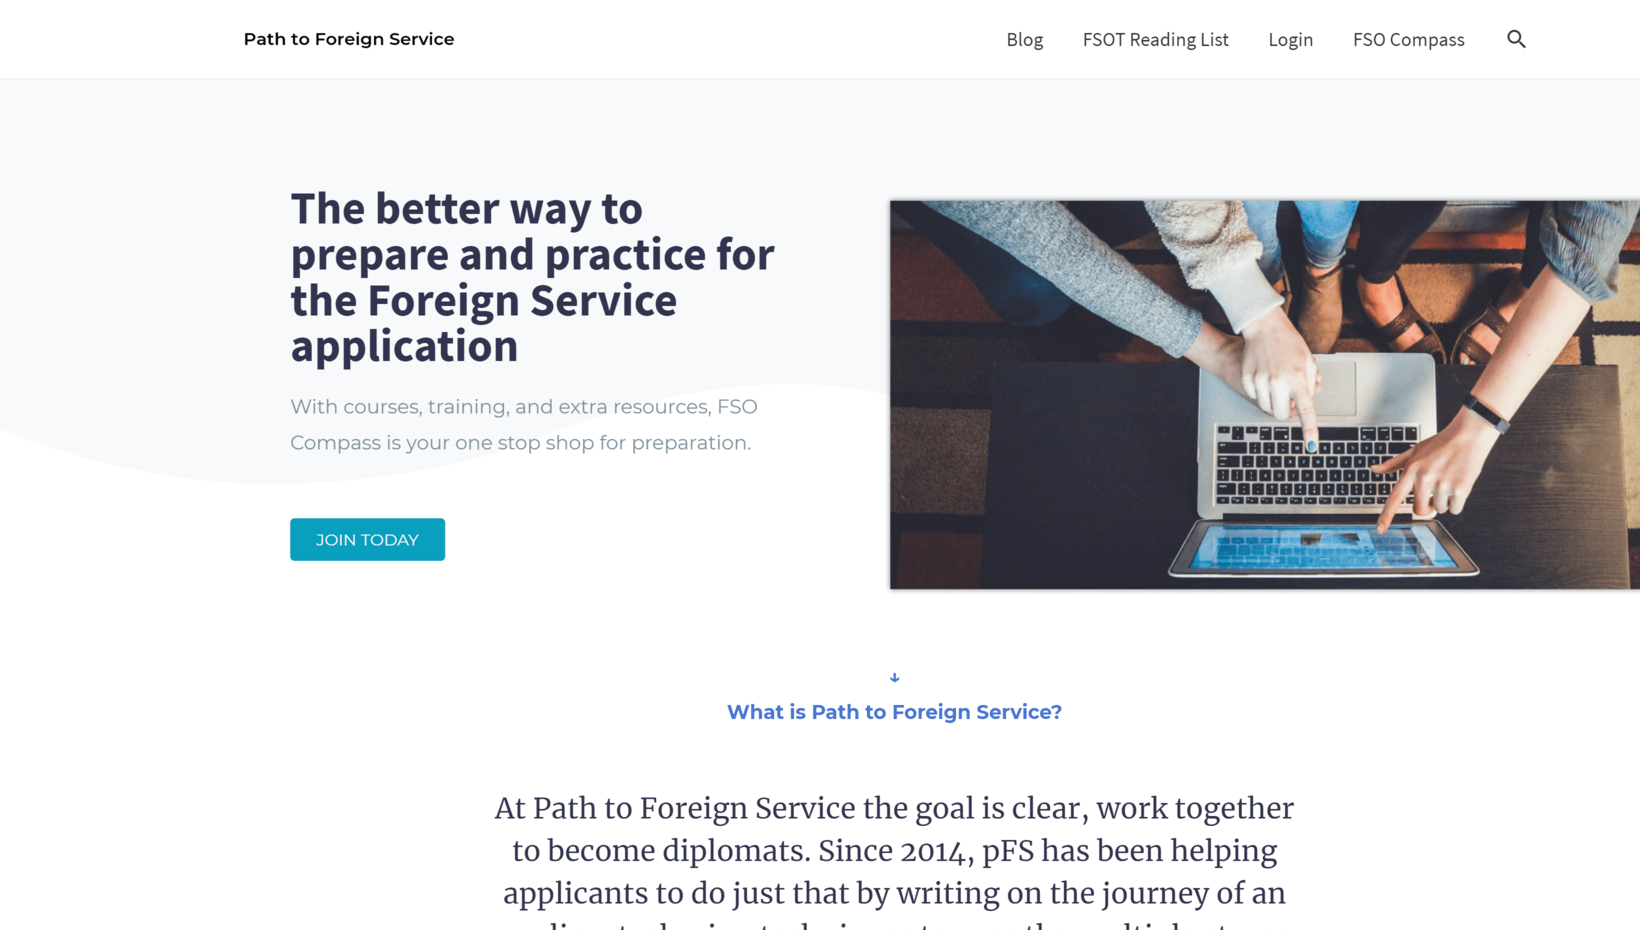 pathtoforeignservice.com_